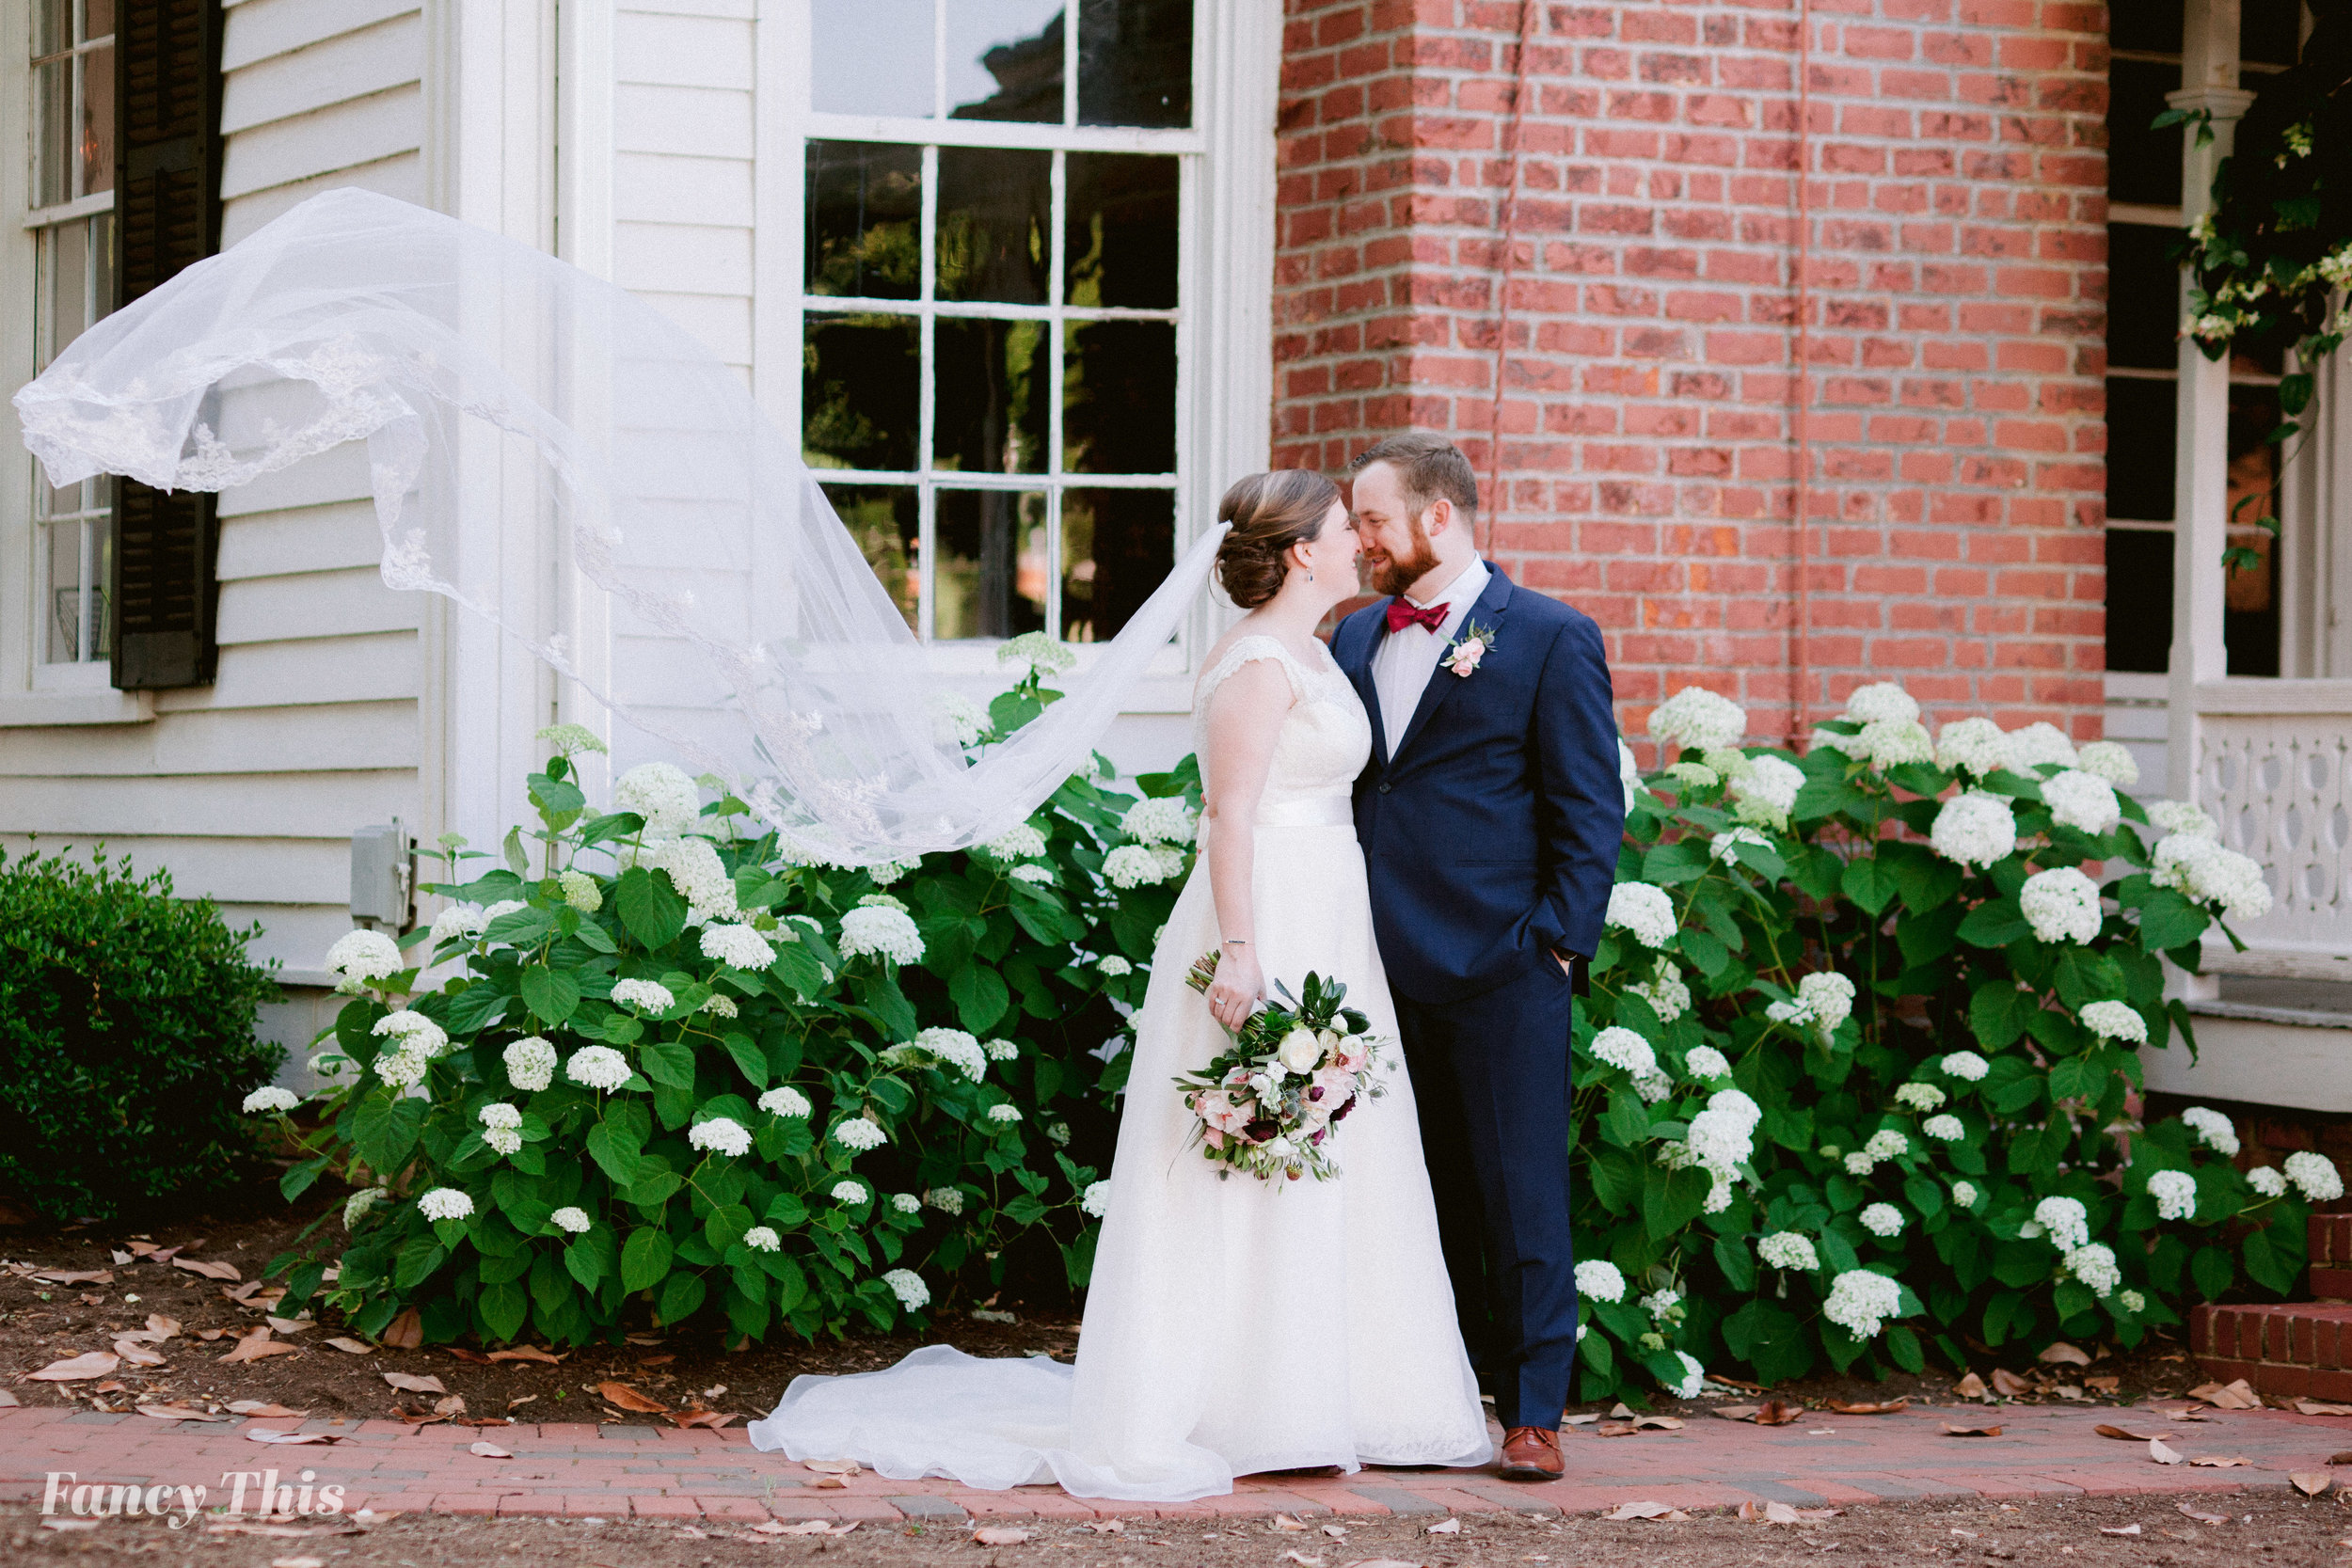 themimshousewedding_summerweddinginhollysprings_fancythis-395.jpg